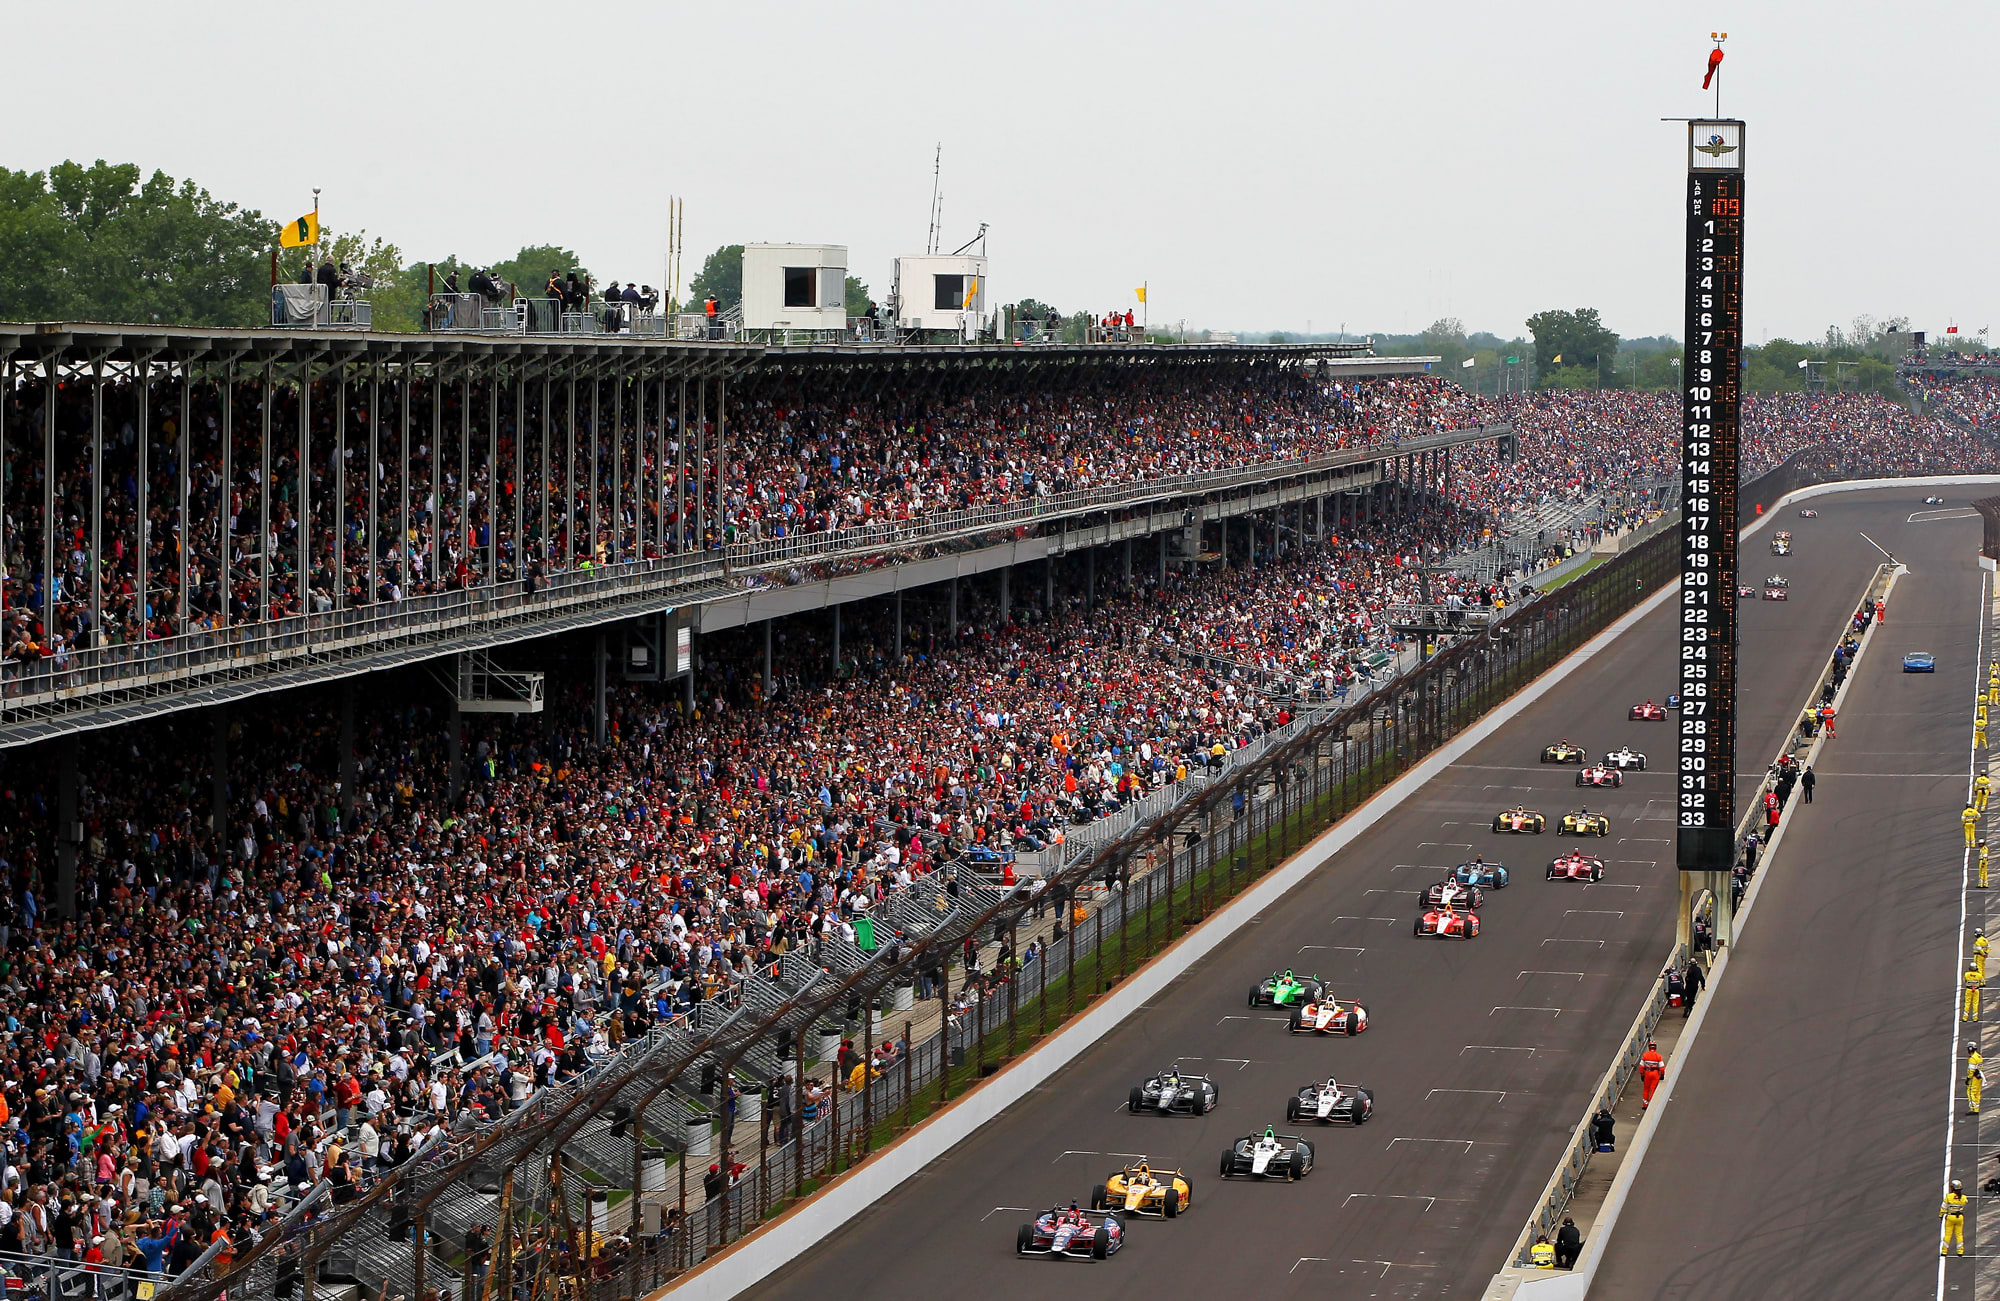 Penske Should Leverage Sports Betting To Revitalize Indy Car Racing and the Indianapolis Motor Speedway